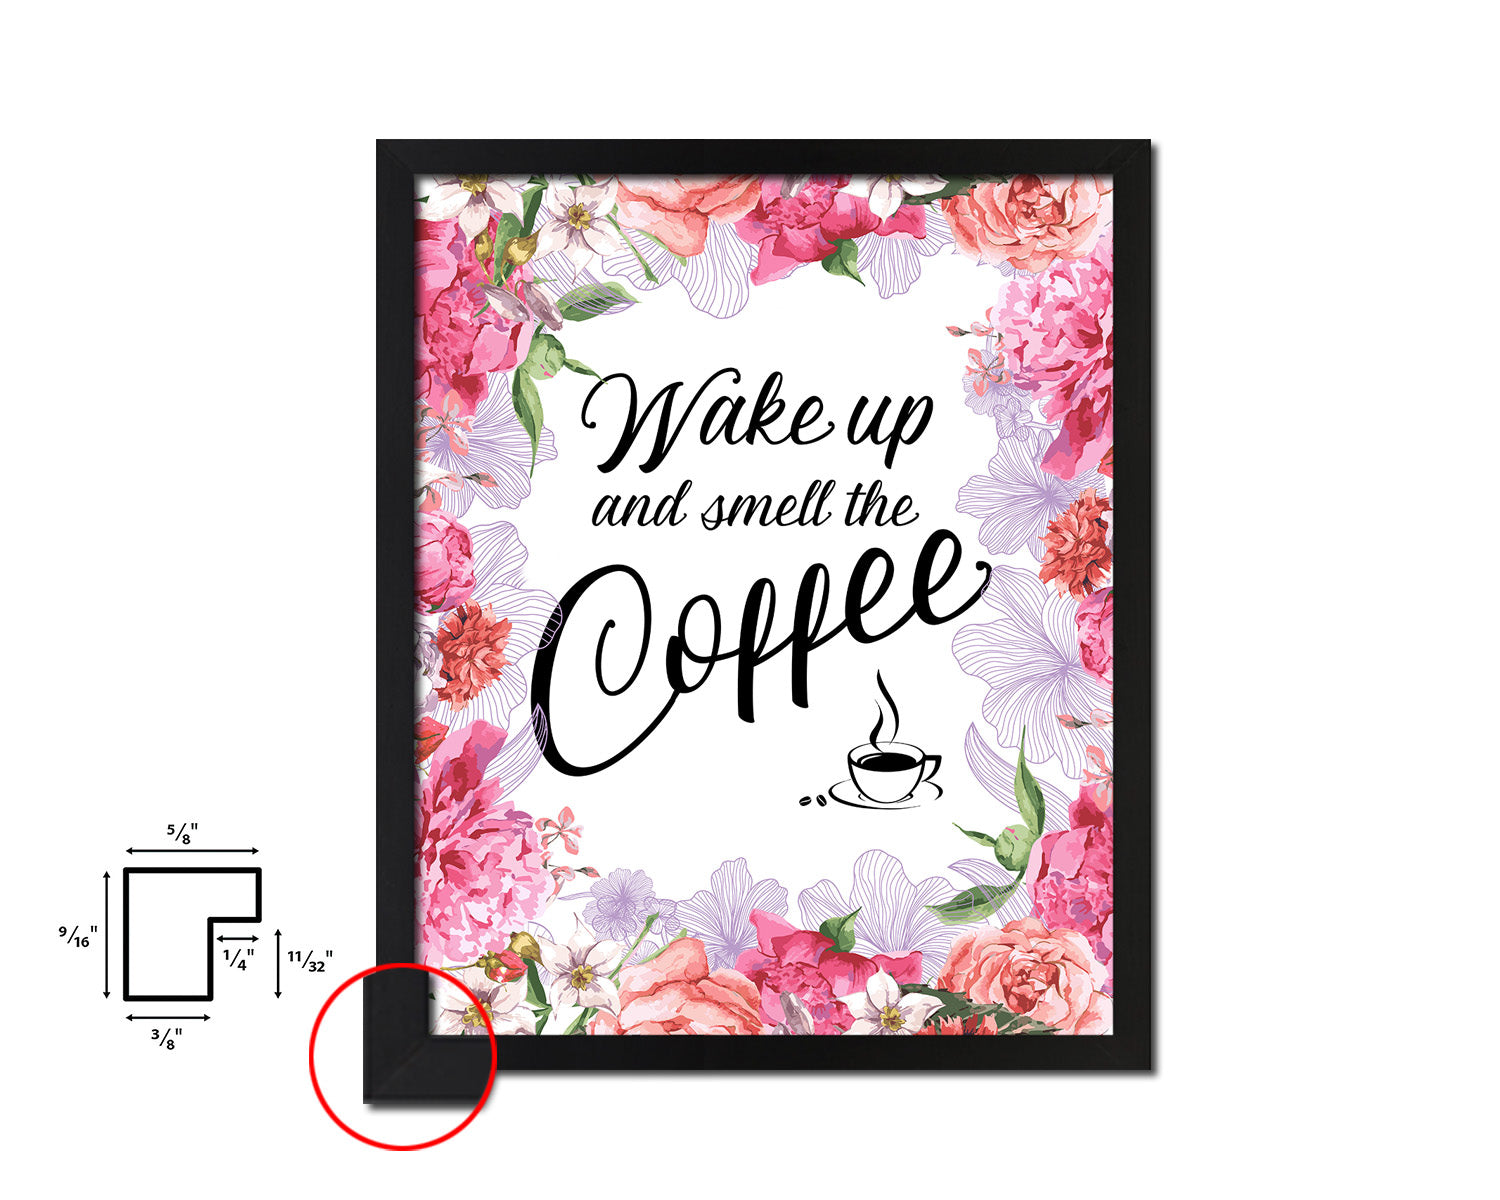 Wake up and smell the coffee Quotes Framed Print Home Decor Wall Art Gifts